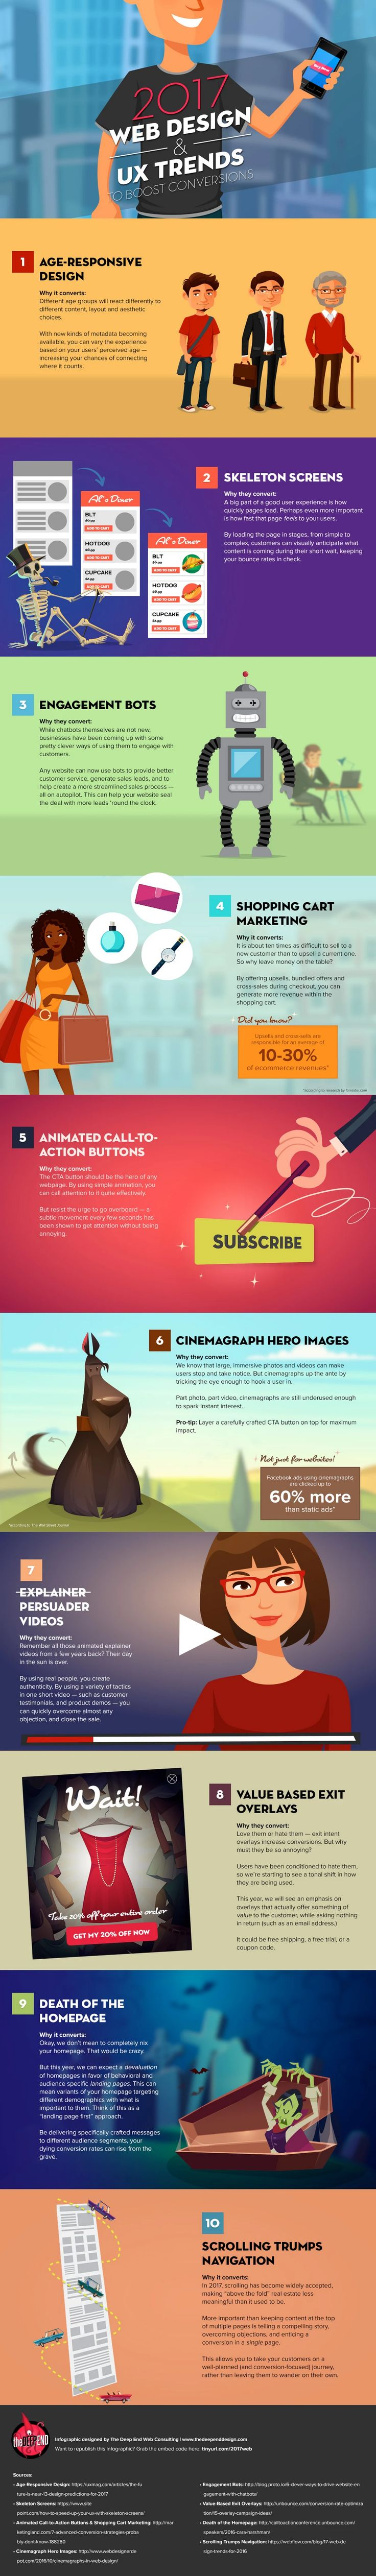 46 best homemade graphic design school images on pinterest adobe foto fandeluxe Image collections